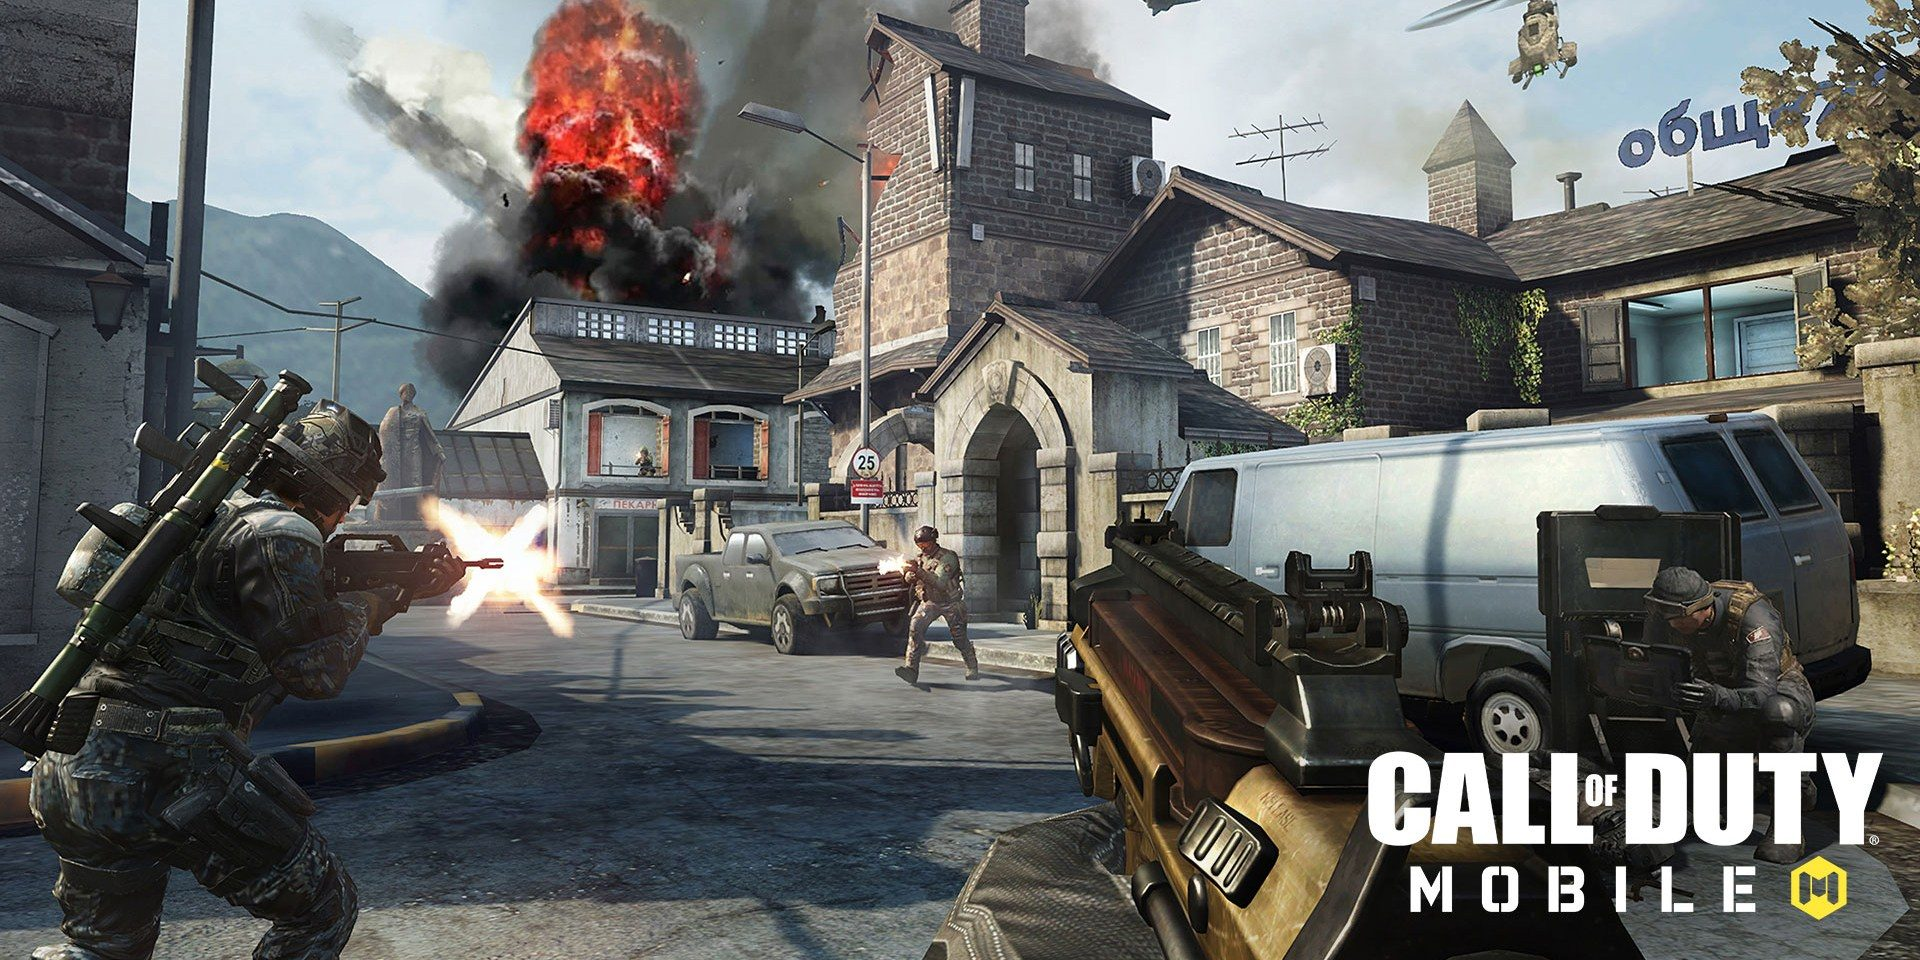 Call of Duty Mobile coming this week to Android and iOS